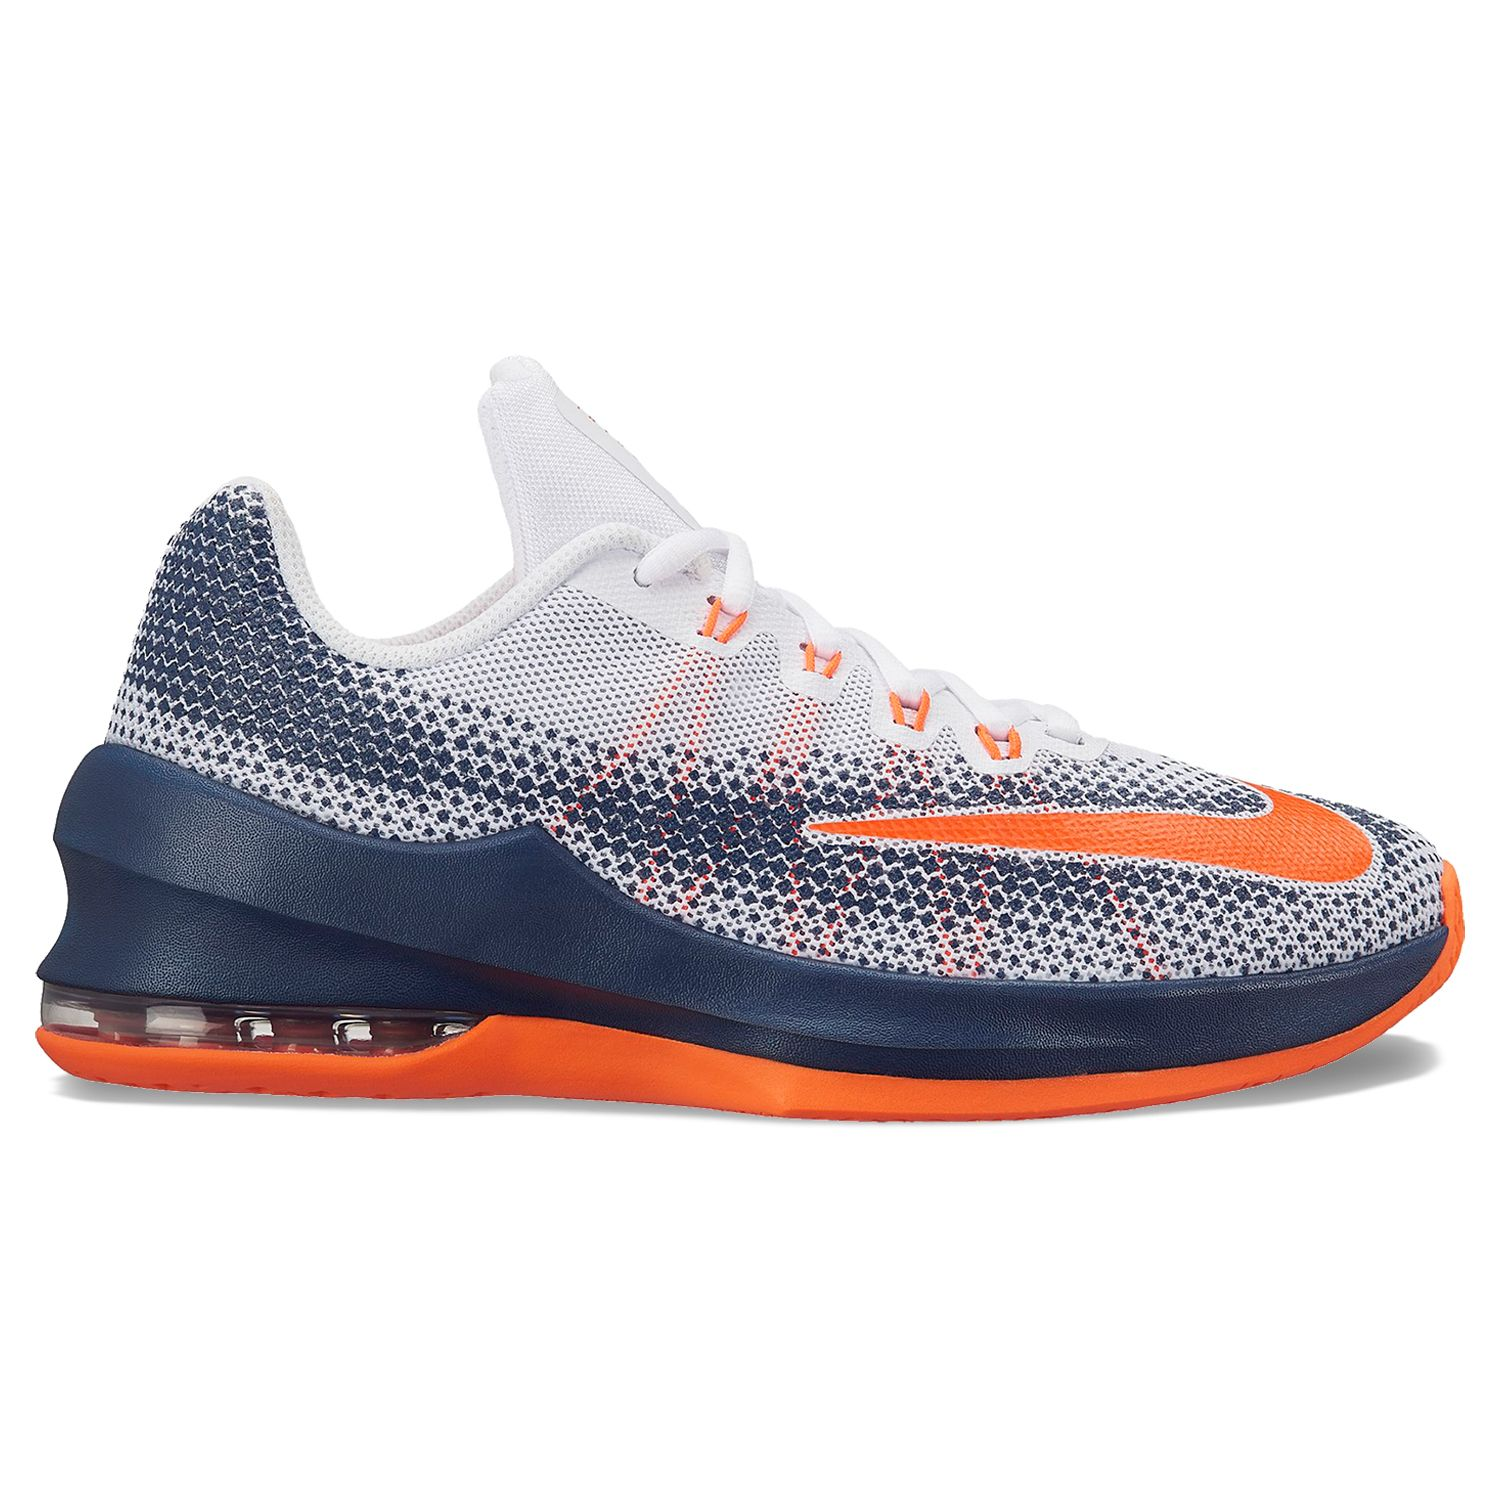 nike air max infuriate grade school boys shoes for kids